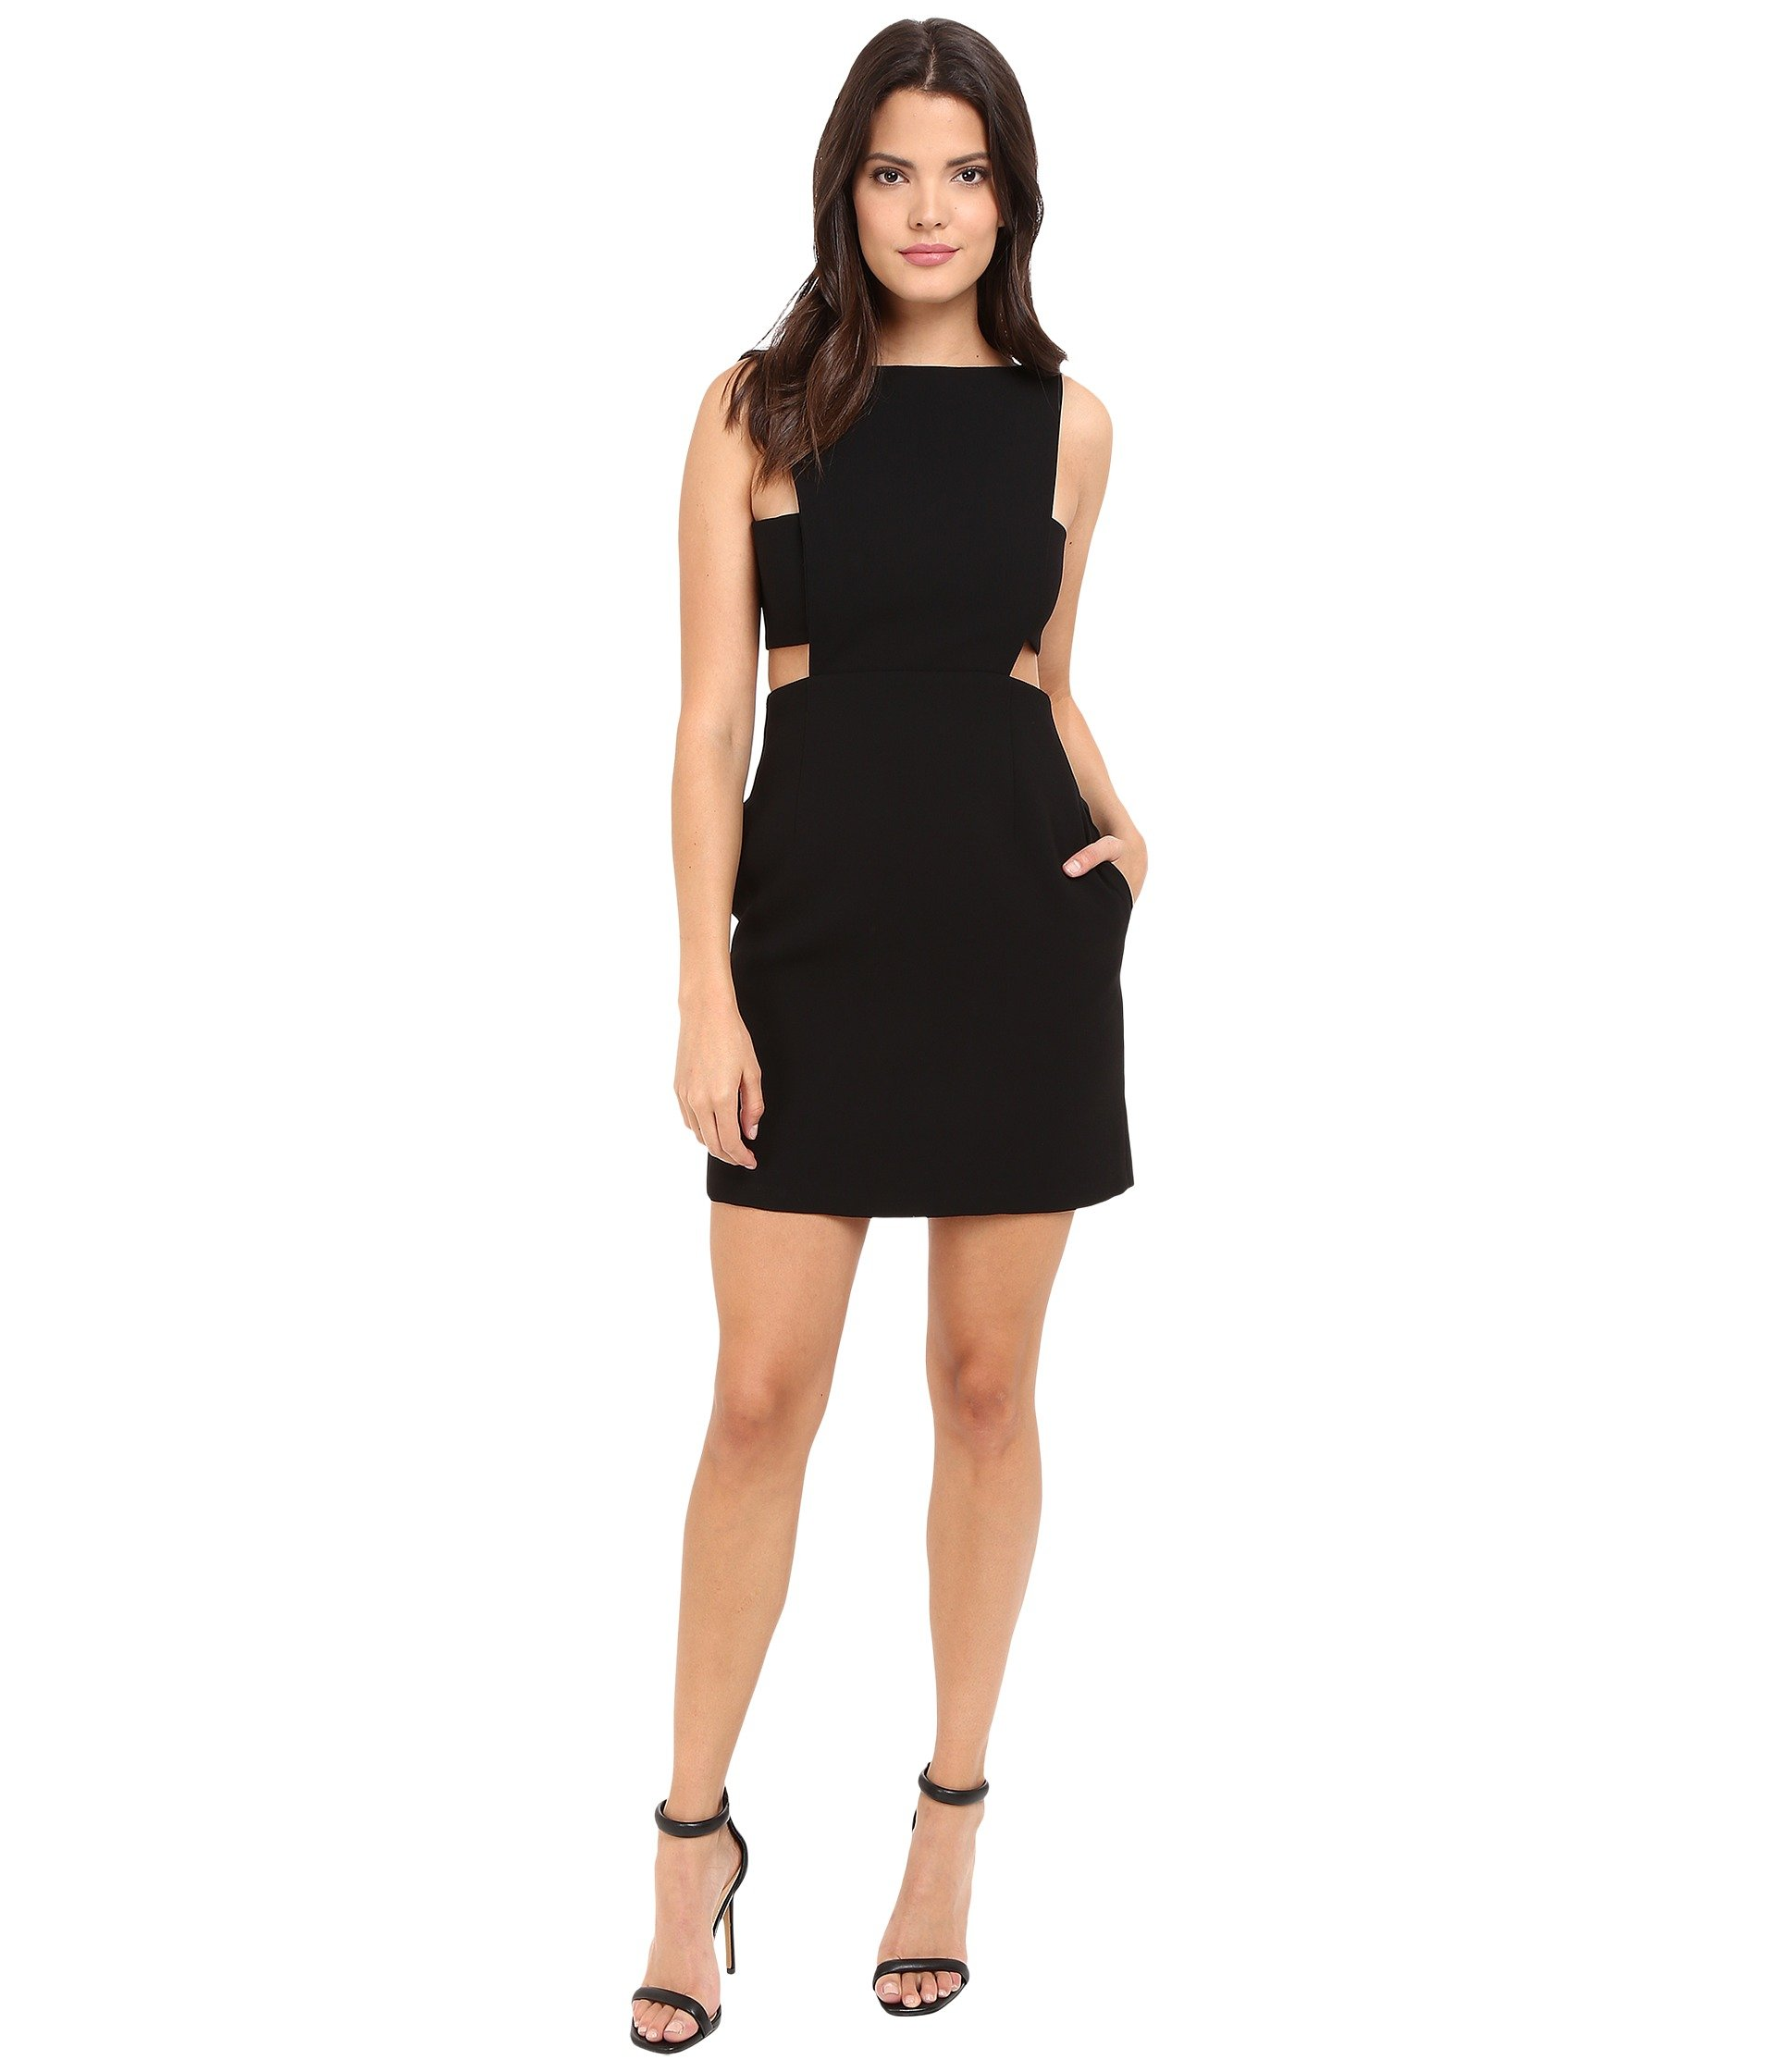 JILL JILL STUART Women's Short Crepe Dress with Cut Out Details Black Dress 14